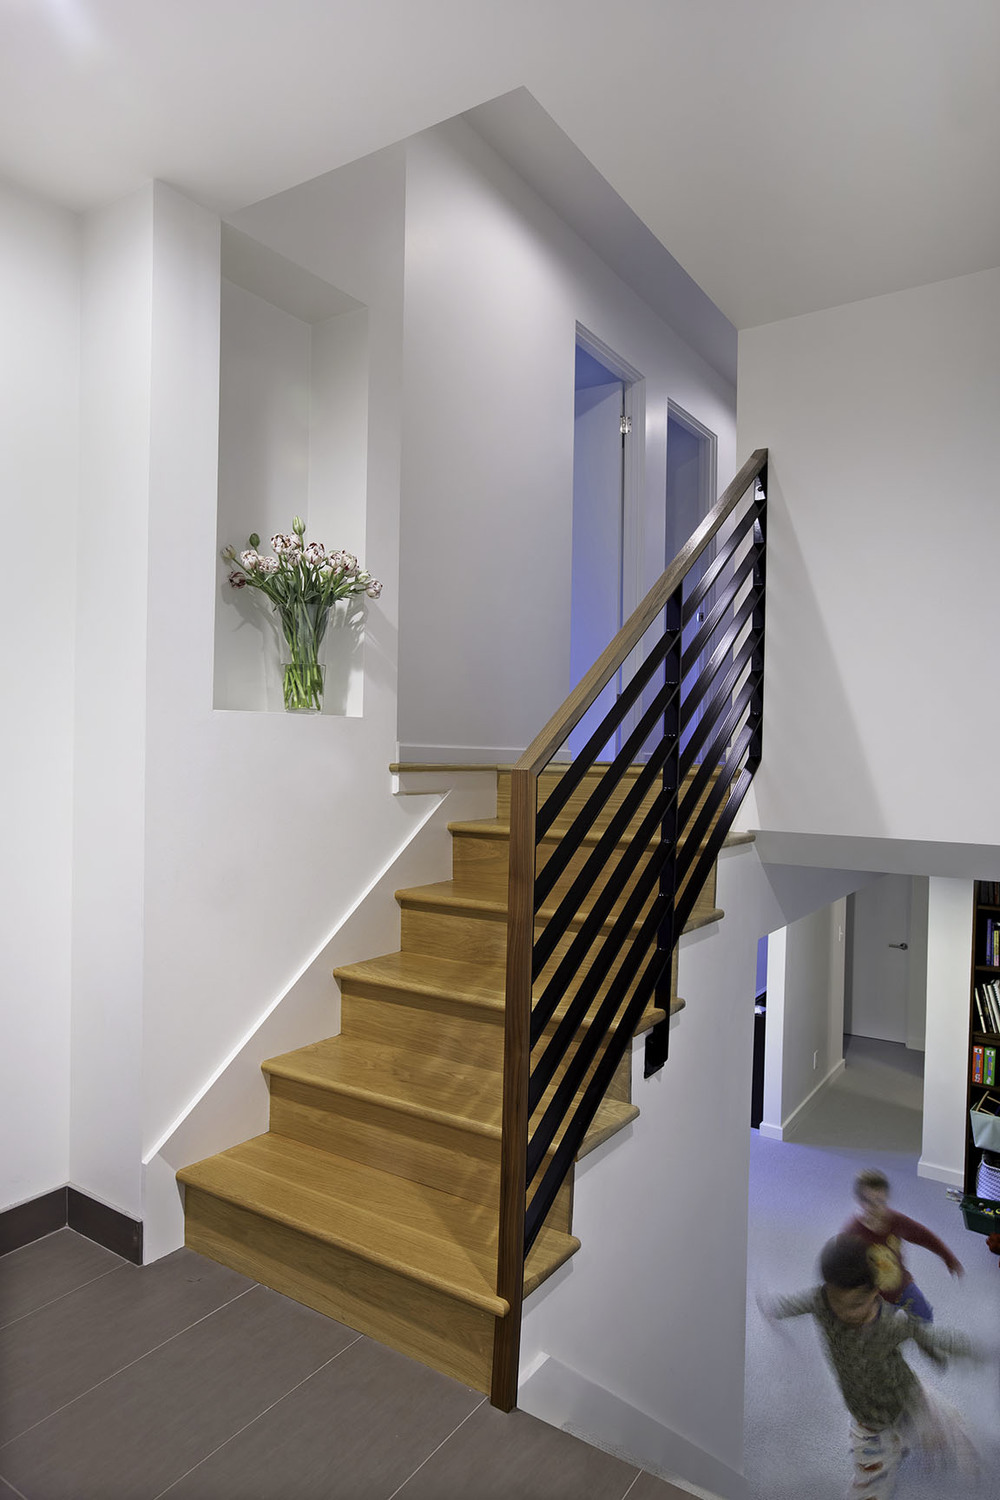 Fitzpatrick House_STAIRWAY_2I2A8098_after ps edit_website.jpg